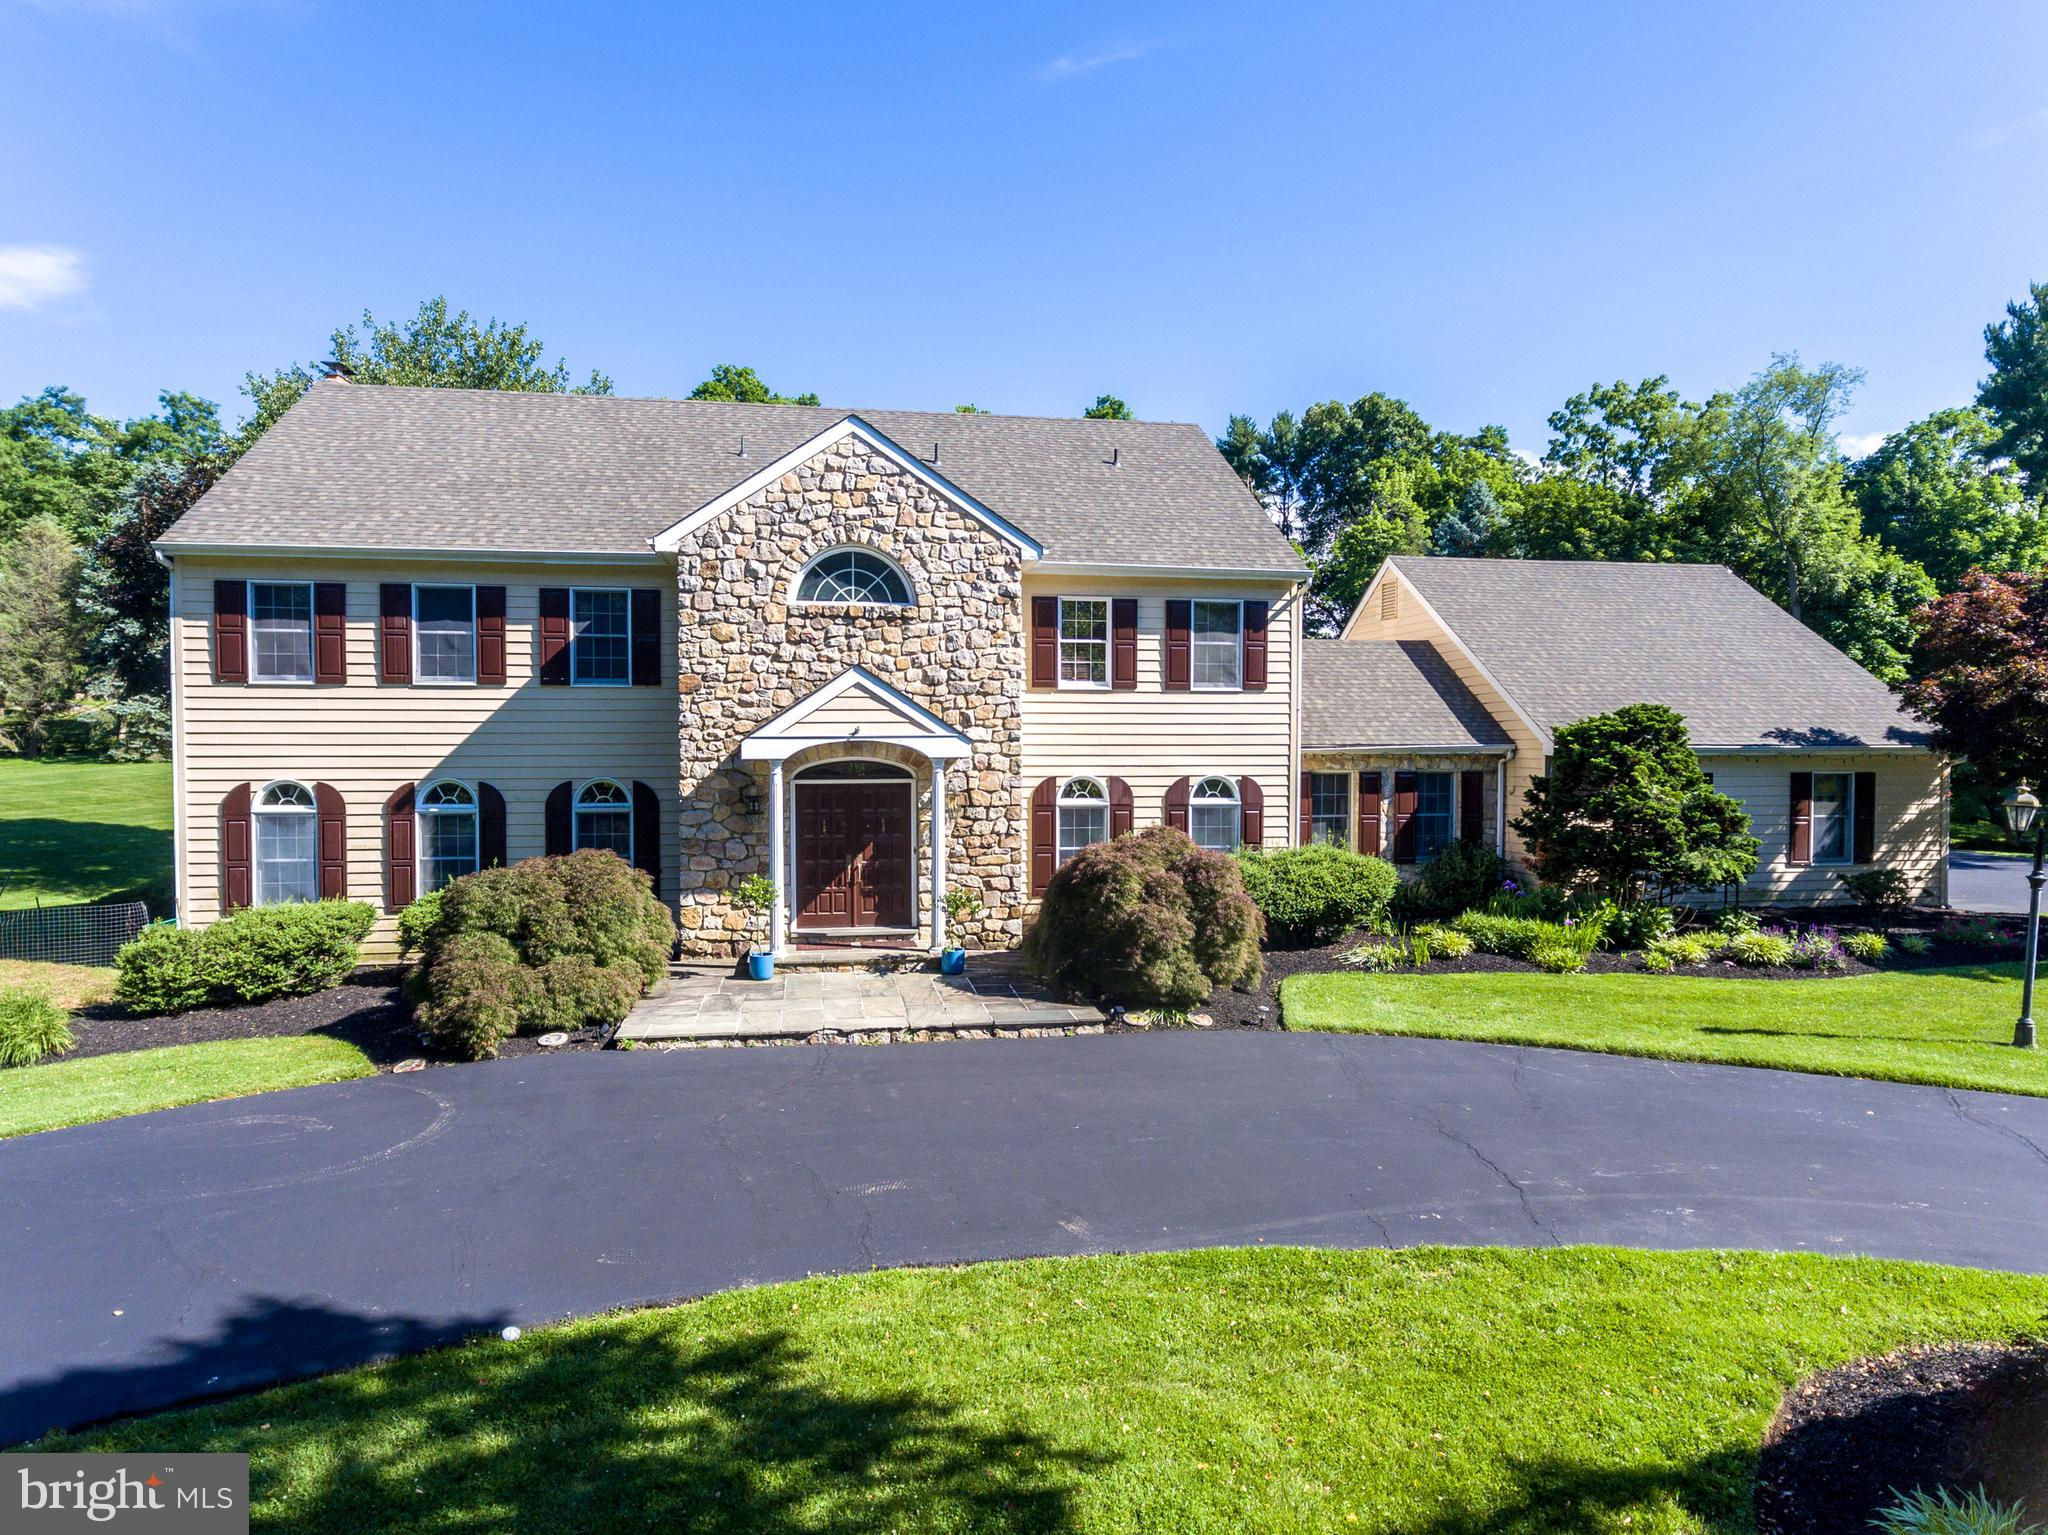 555 BRIGHTS LANE, BLUE BELL, PA 19422